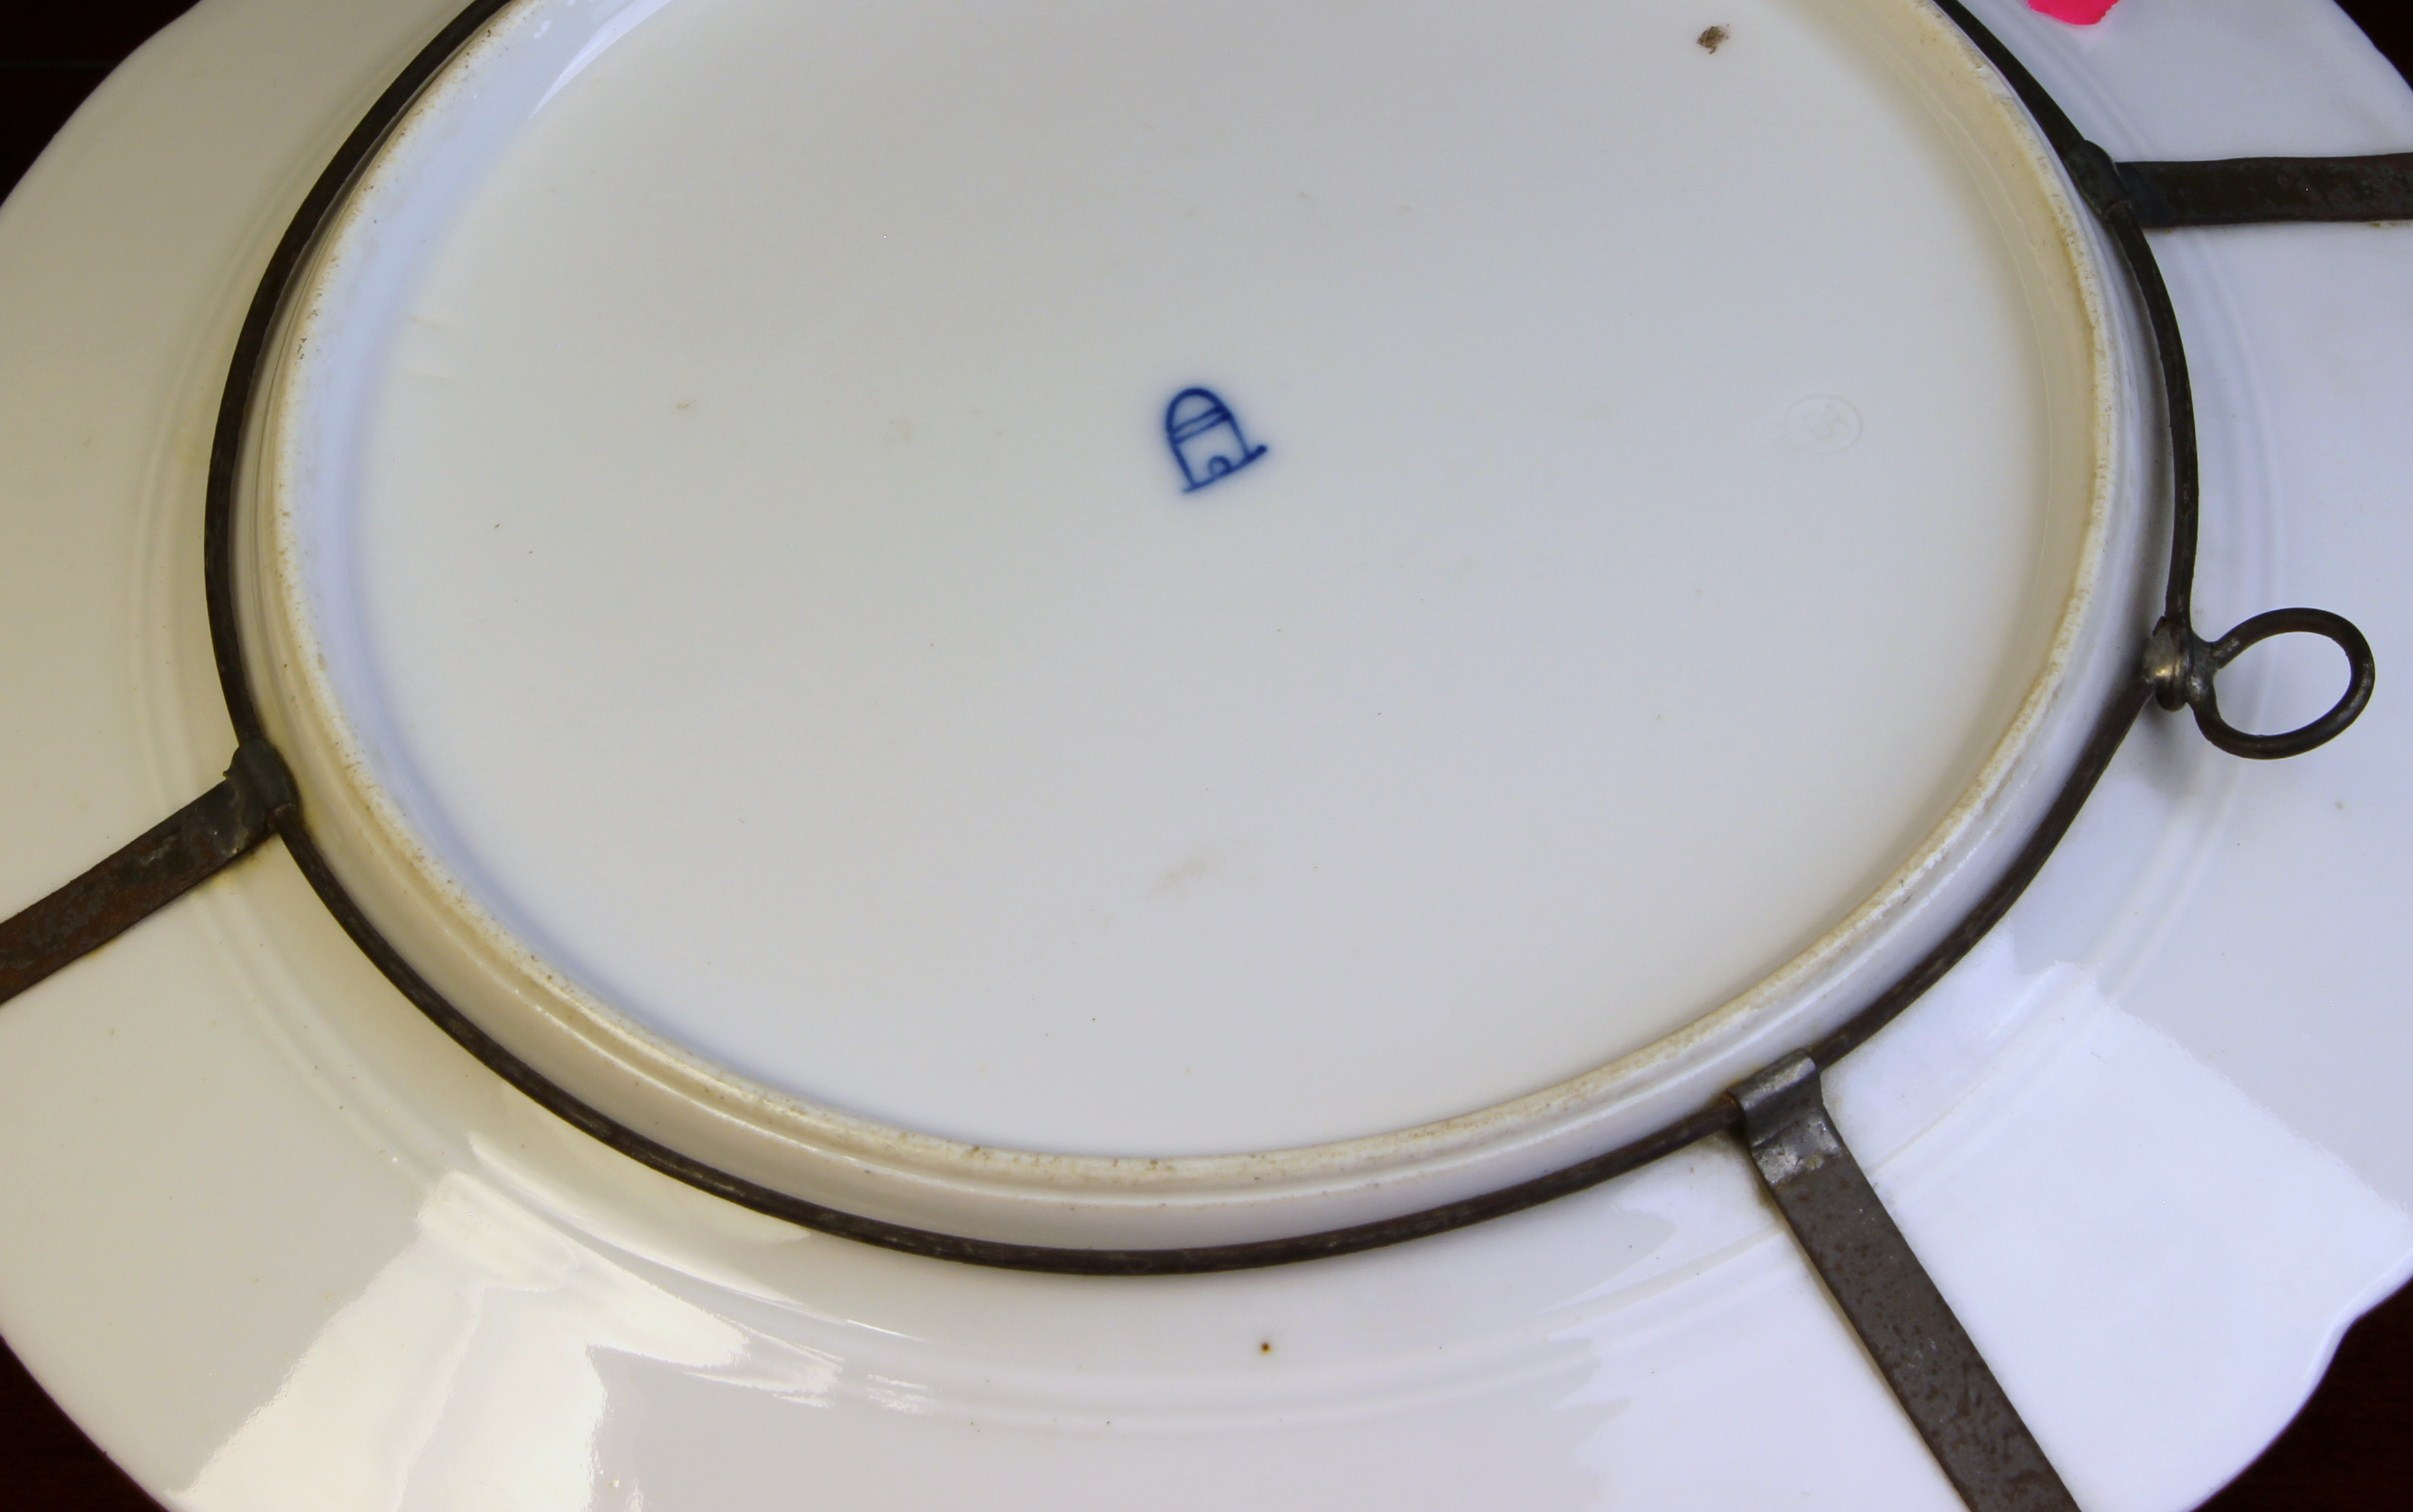 A Antique Royal Vienna Style Porcelain Cabinet Plate with C.M. Hutschenreather mark. - Image 3 of 3